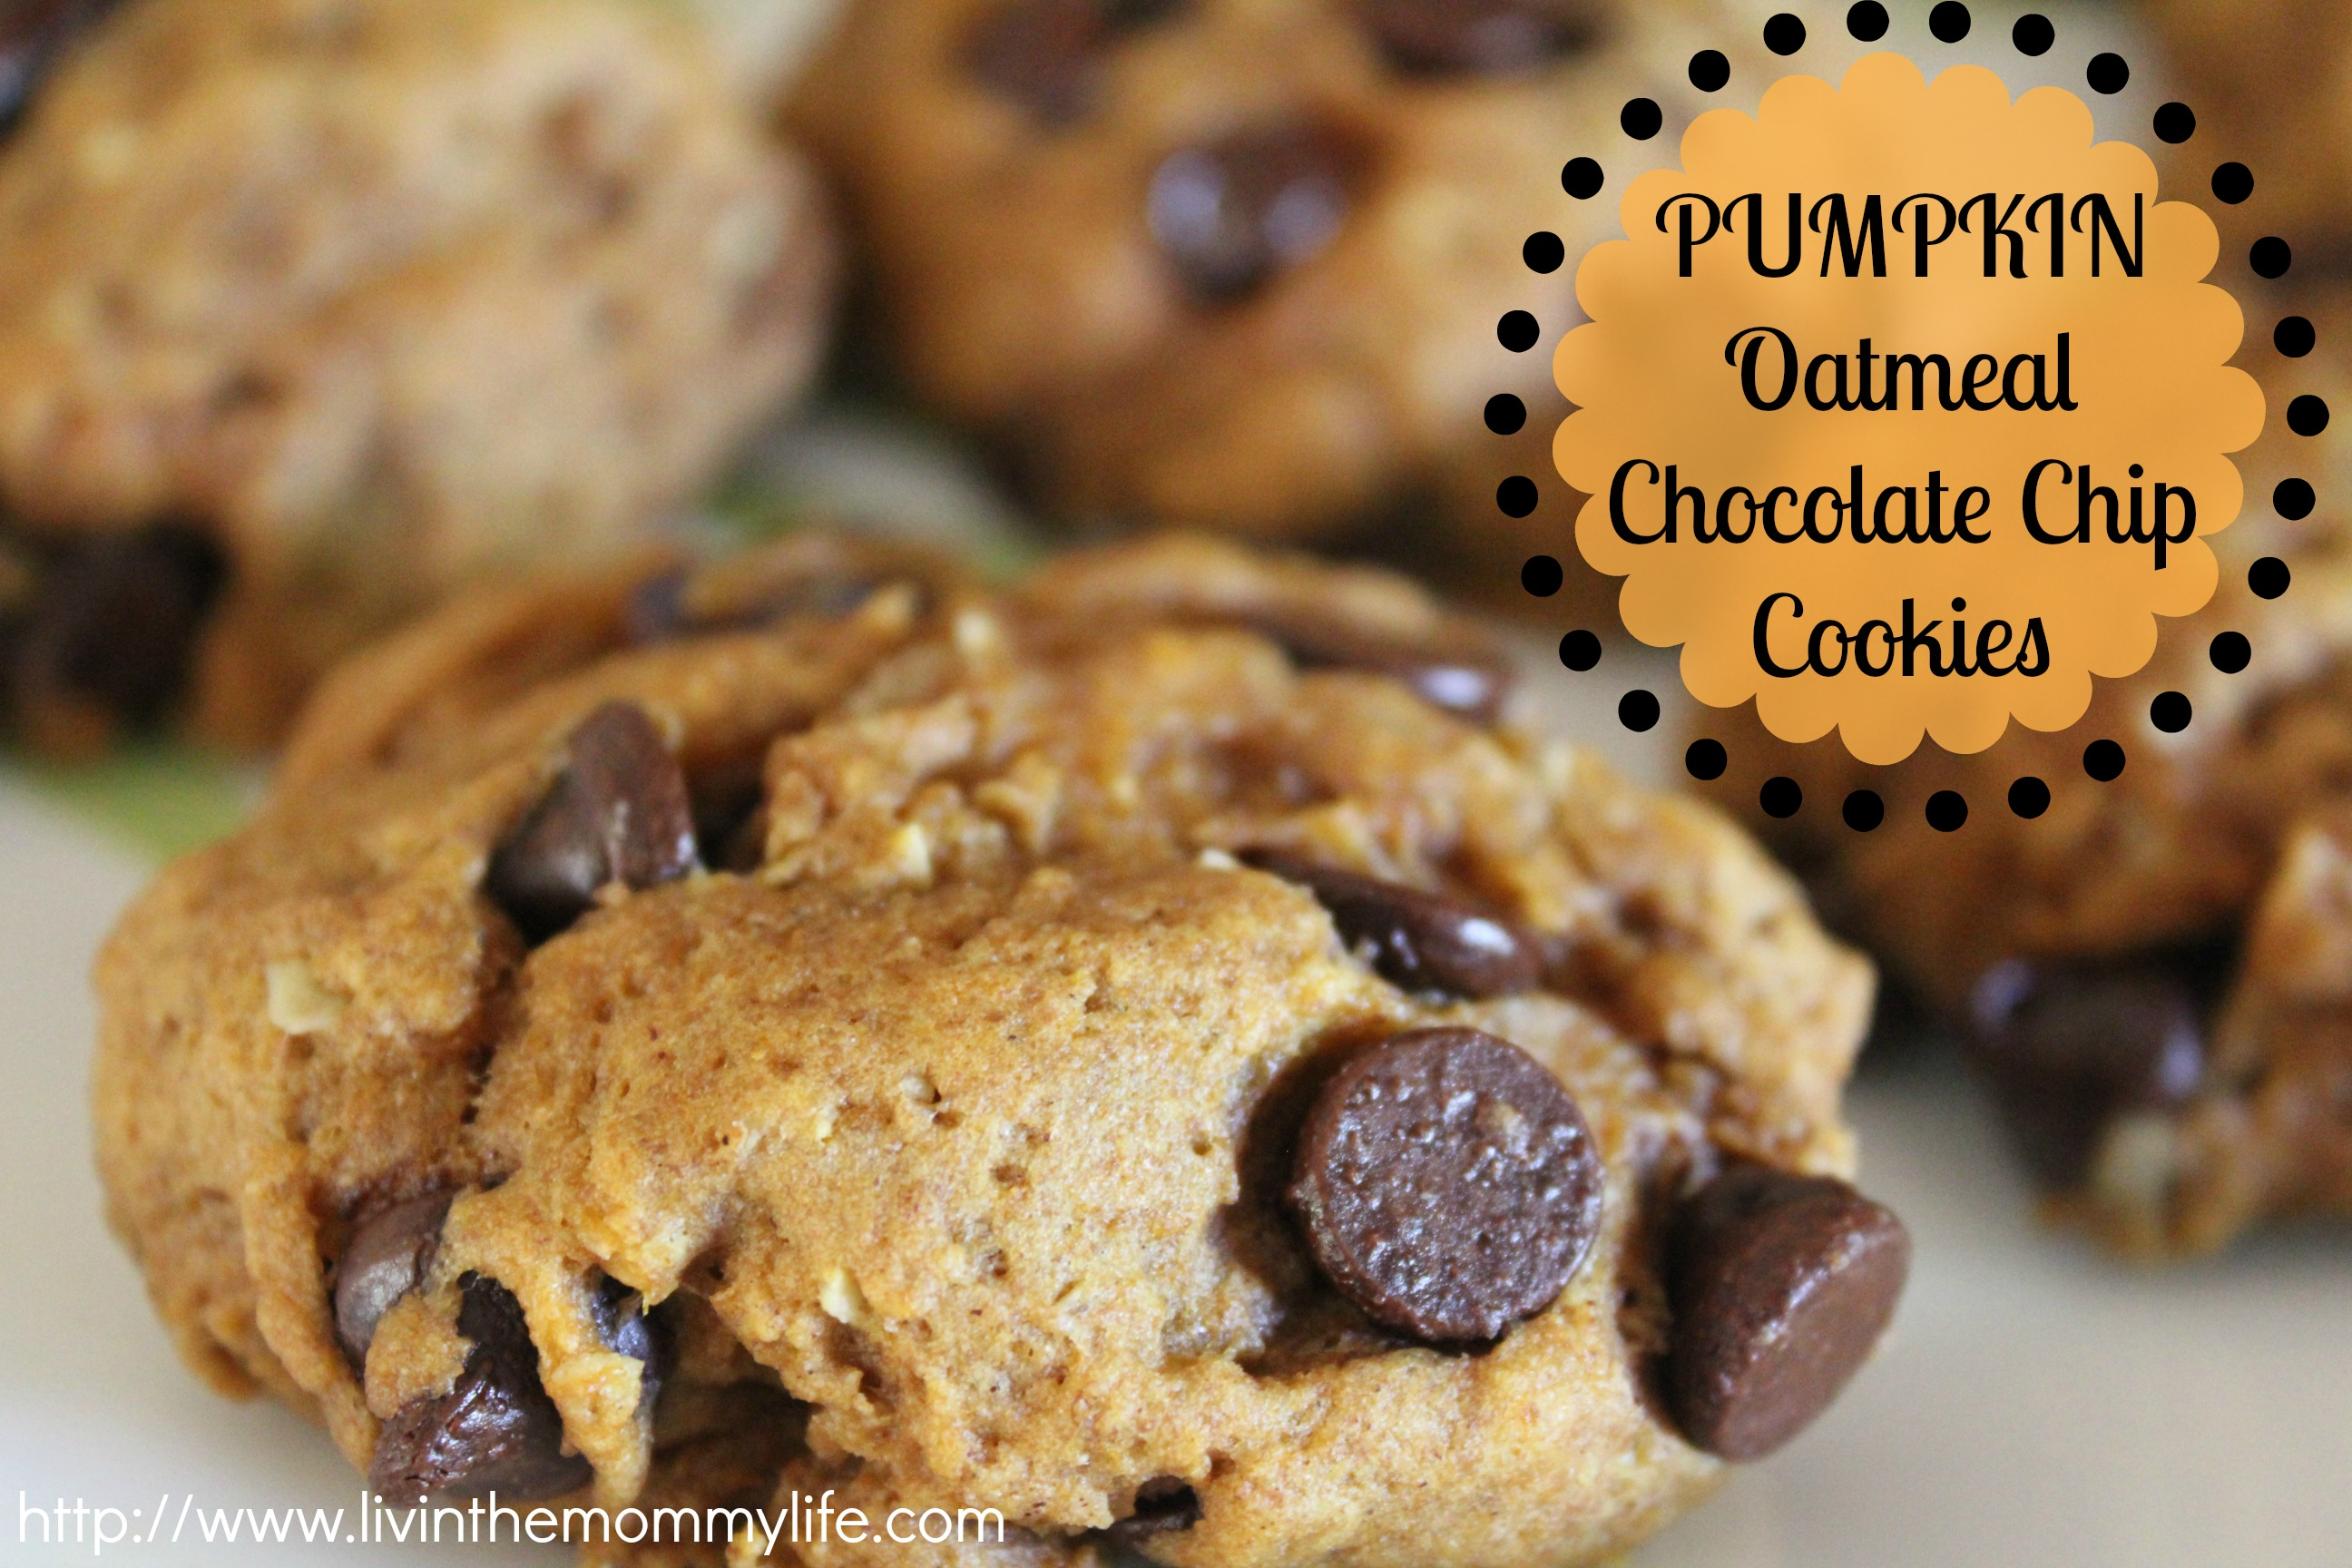 Pumpkin Oatmeal Chocolate Chip Cookies | Livin' the Mommy Life